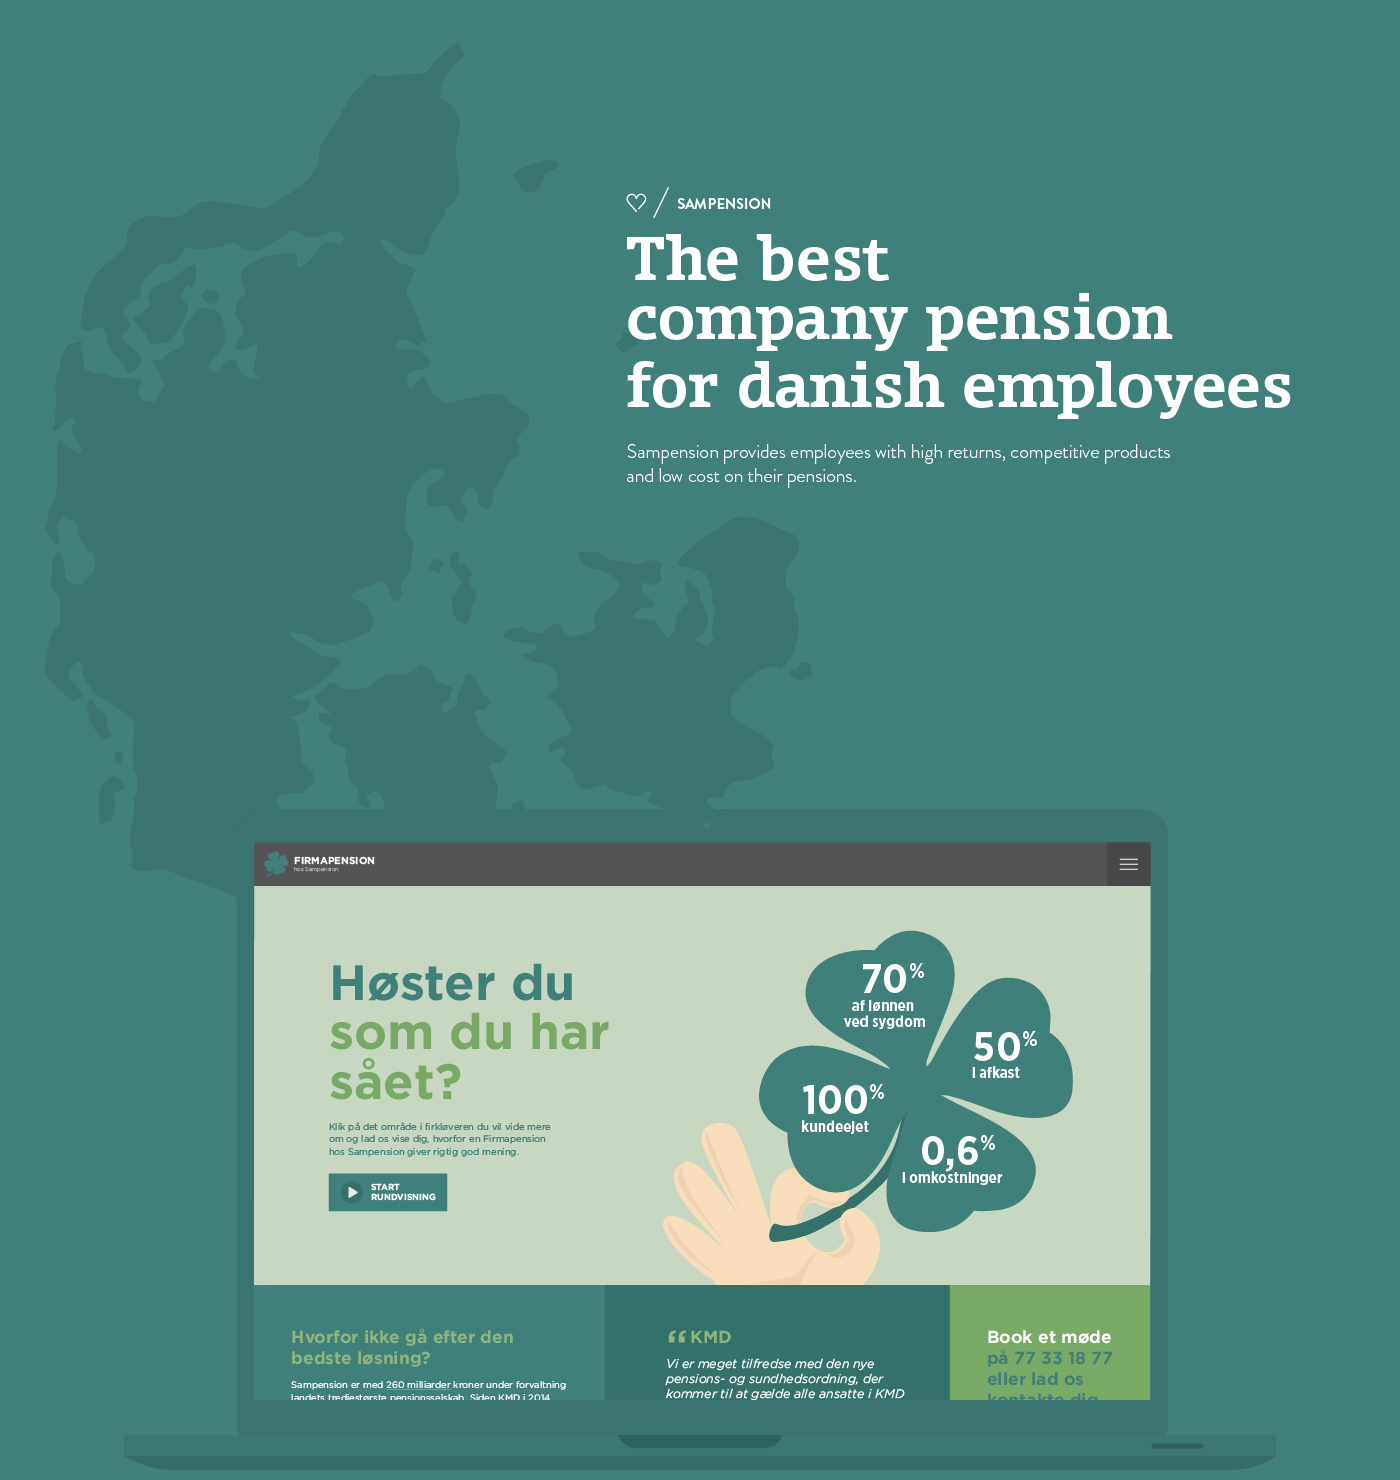 Sampension Firmapension campaign site Website Company Pension pension employees money insurance